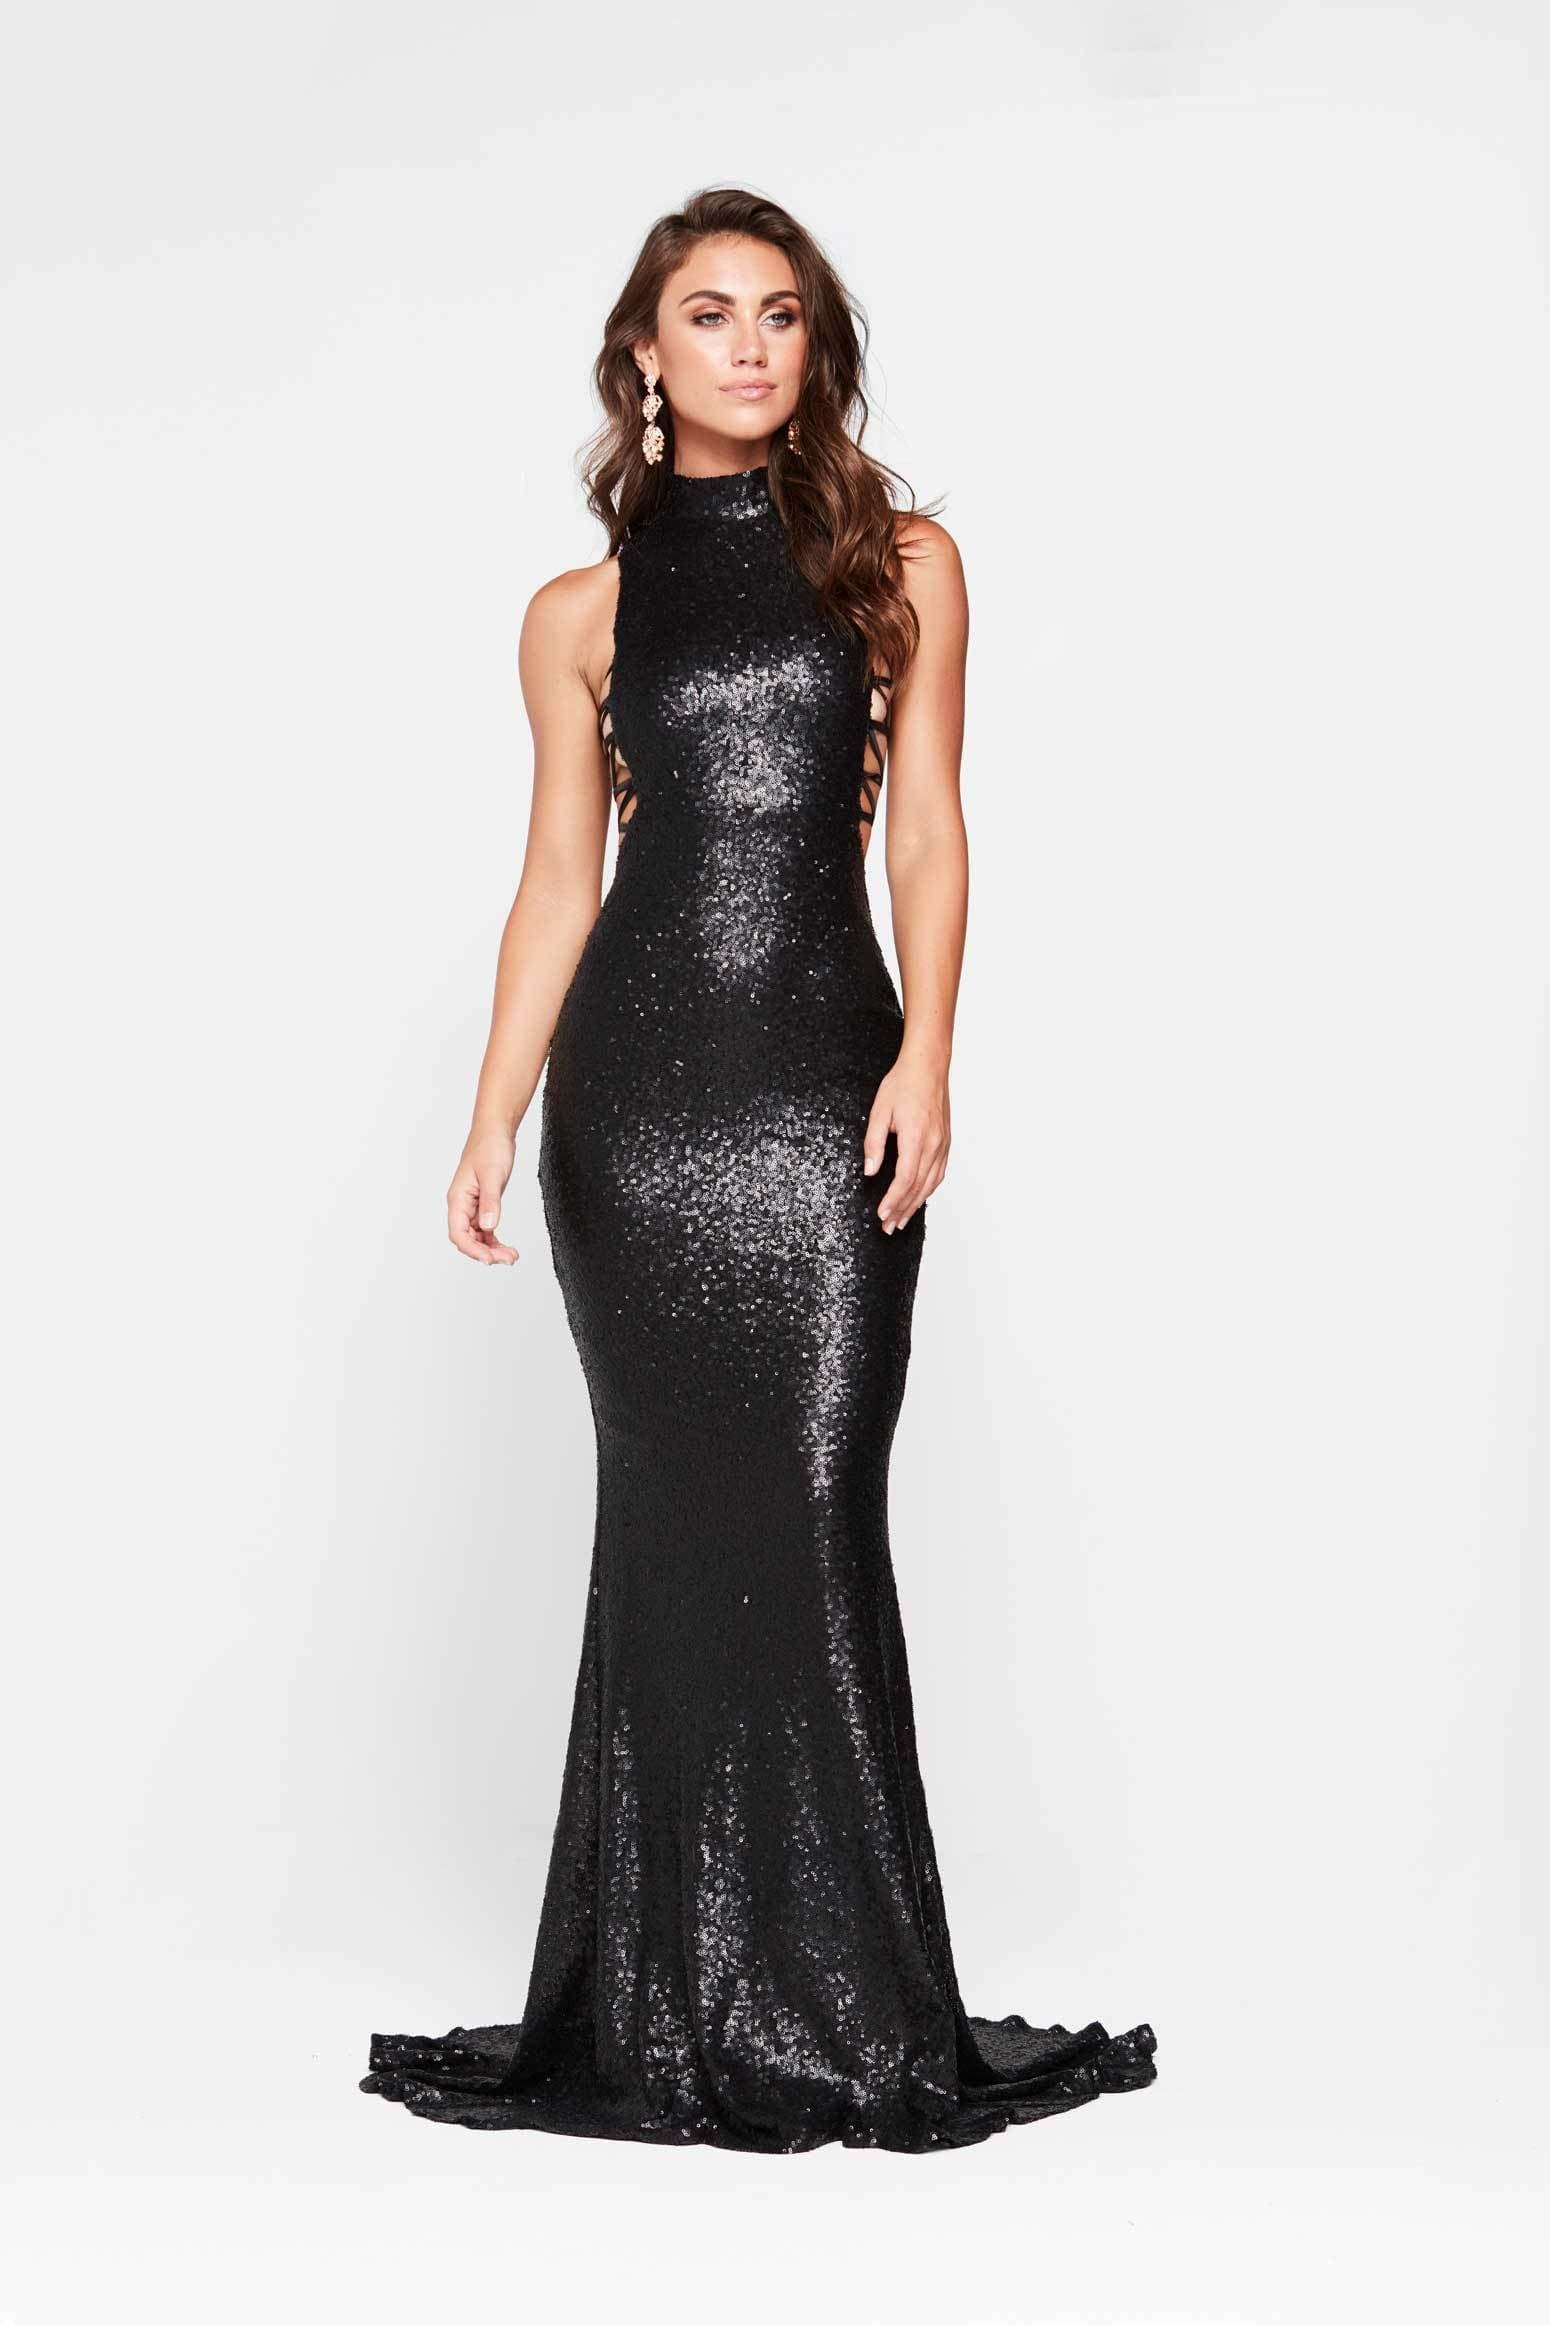 Zuzu Dress - Black Sequin High Neck Criss Cross Full Length Gown